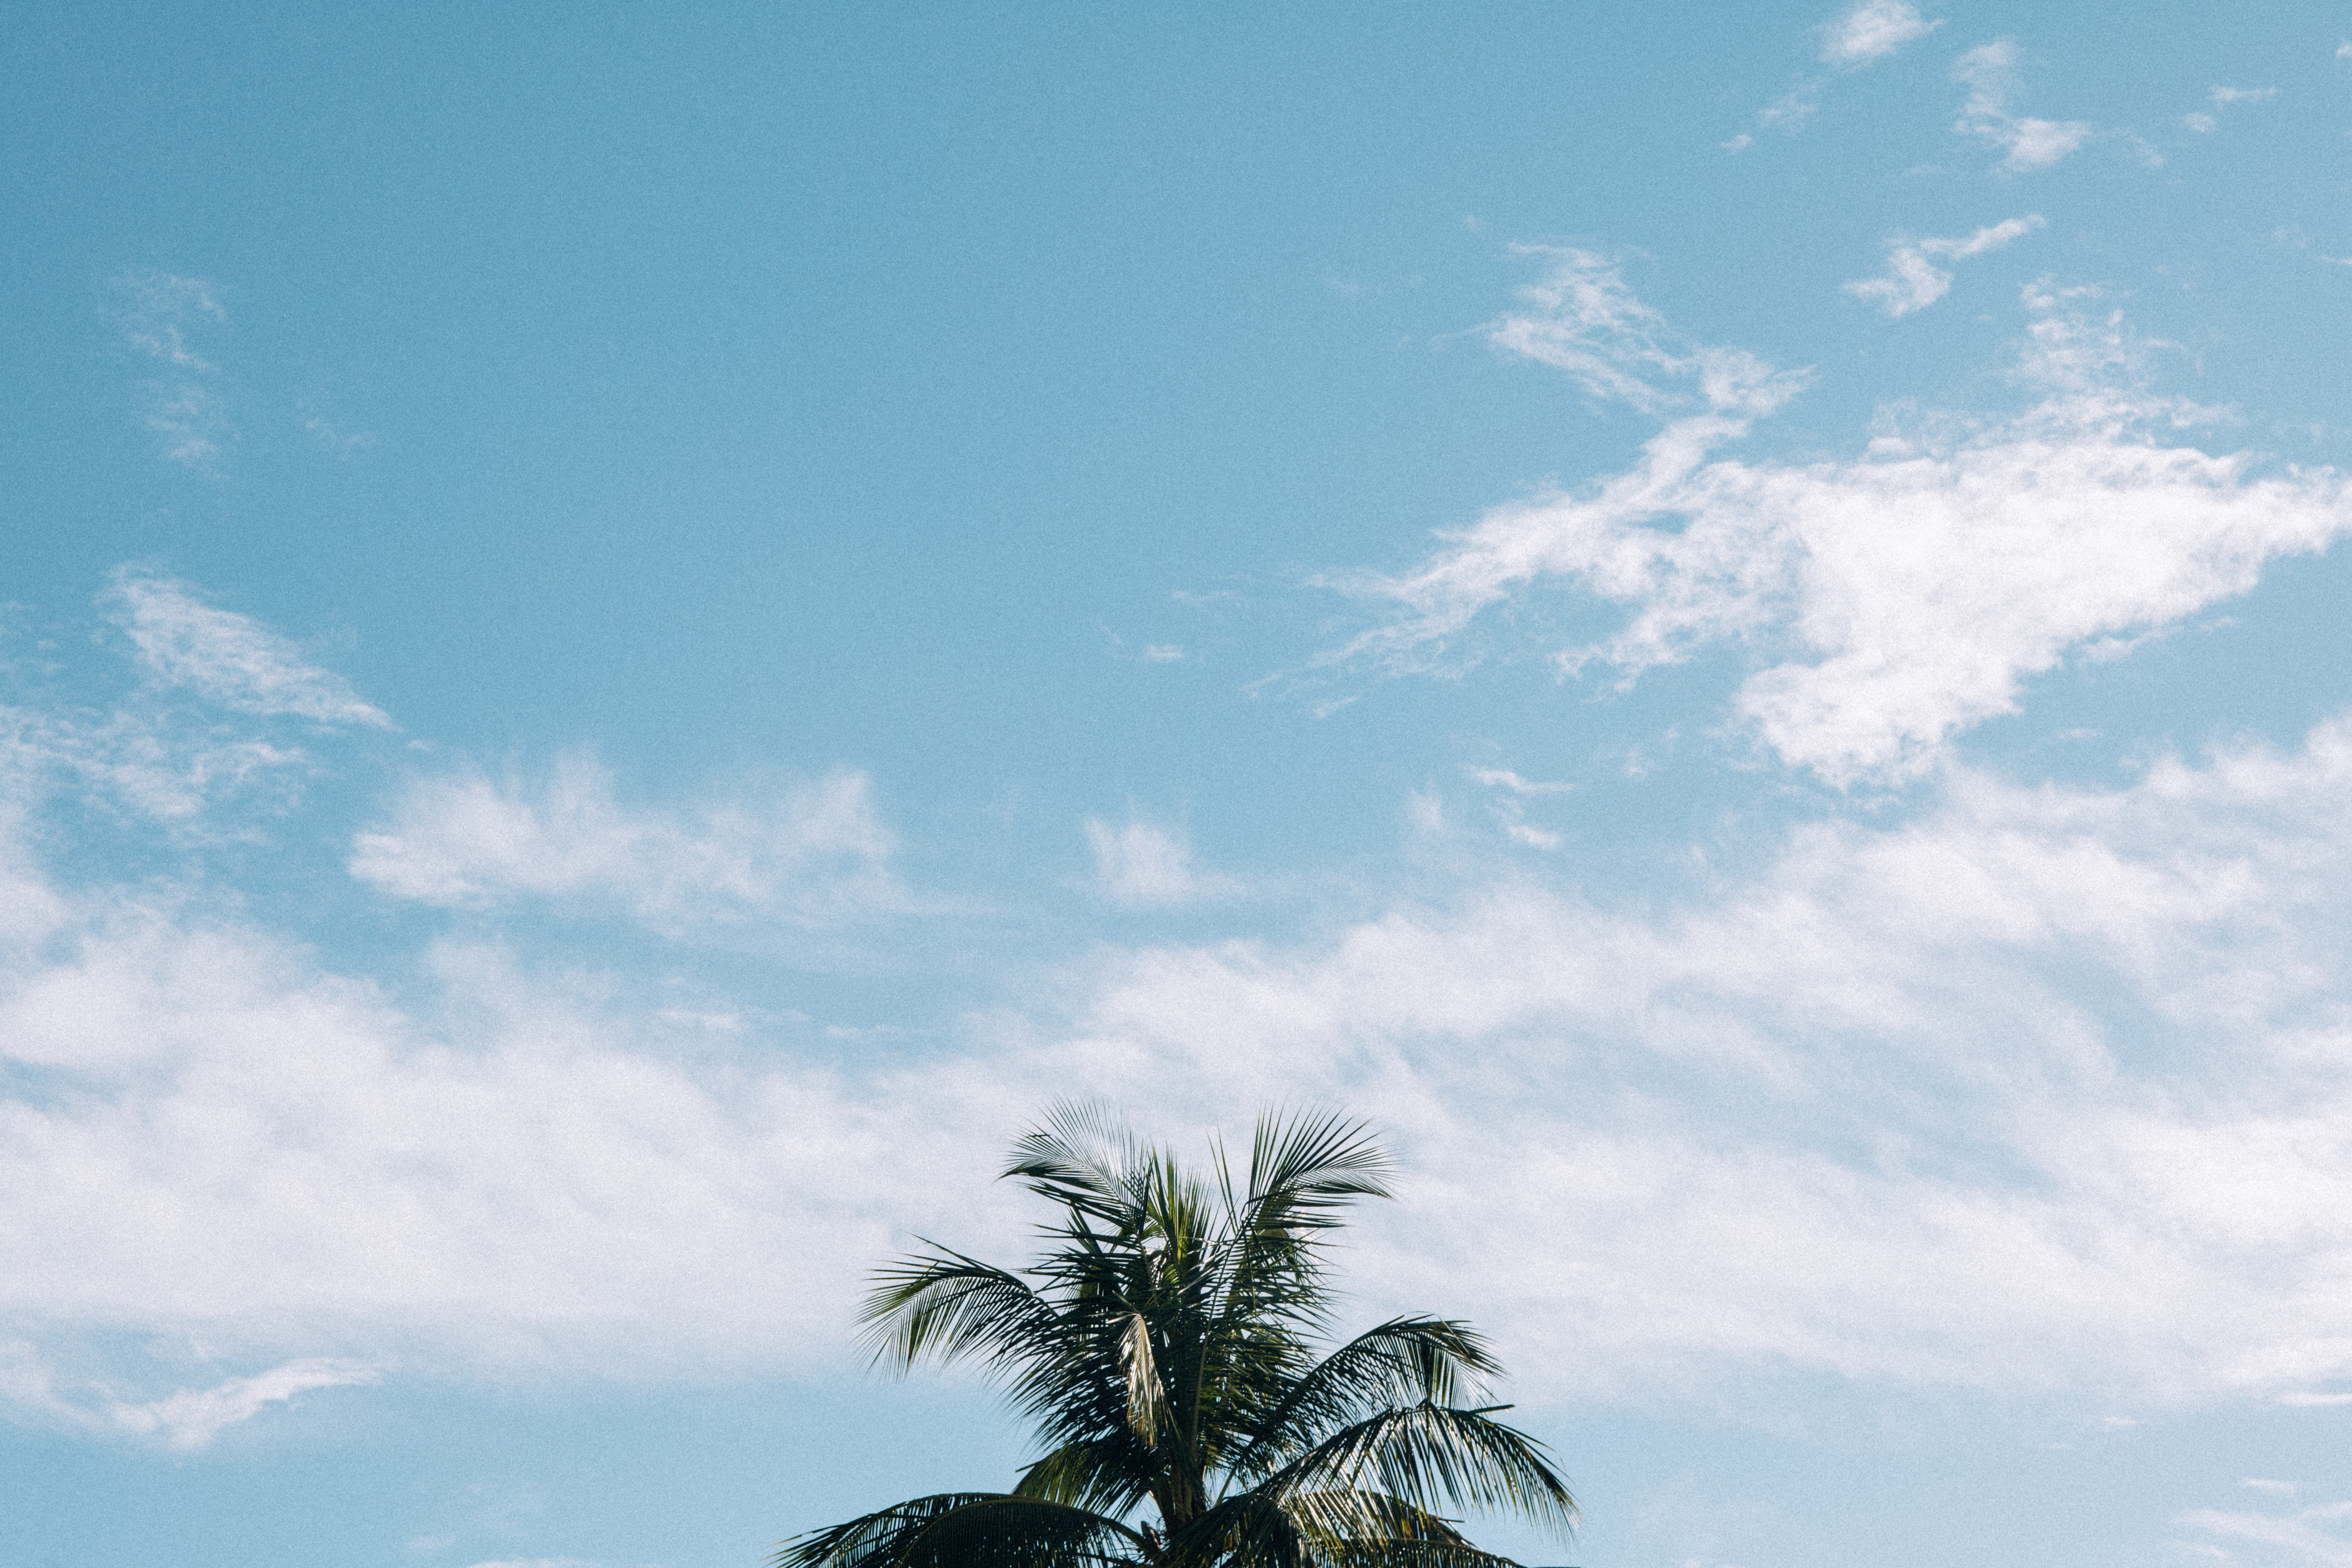 coconut palm tree under cloudy blue sky